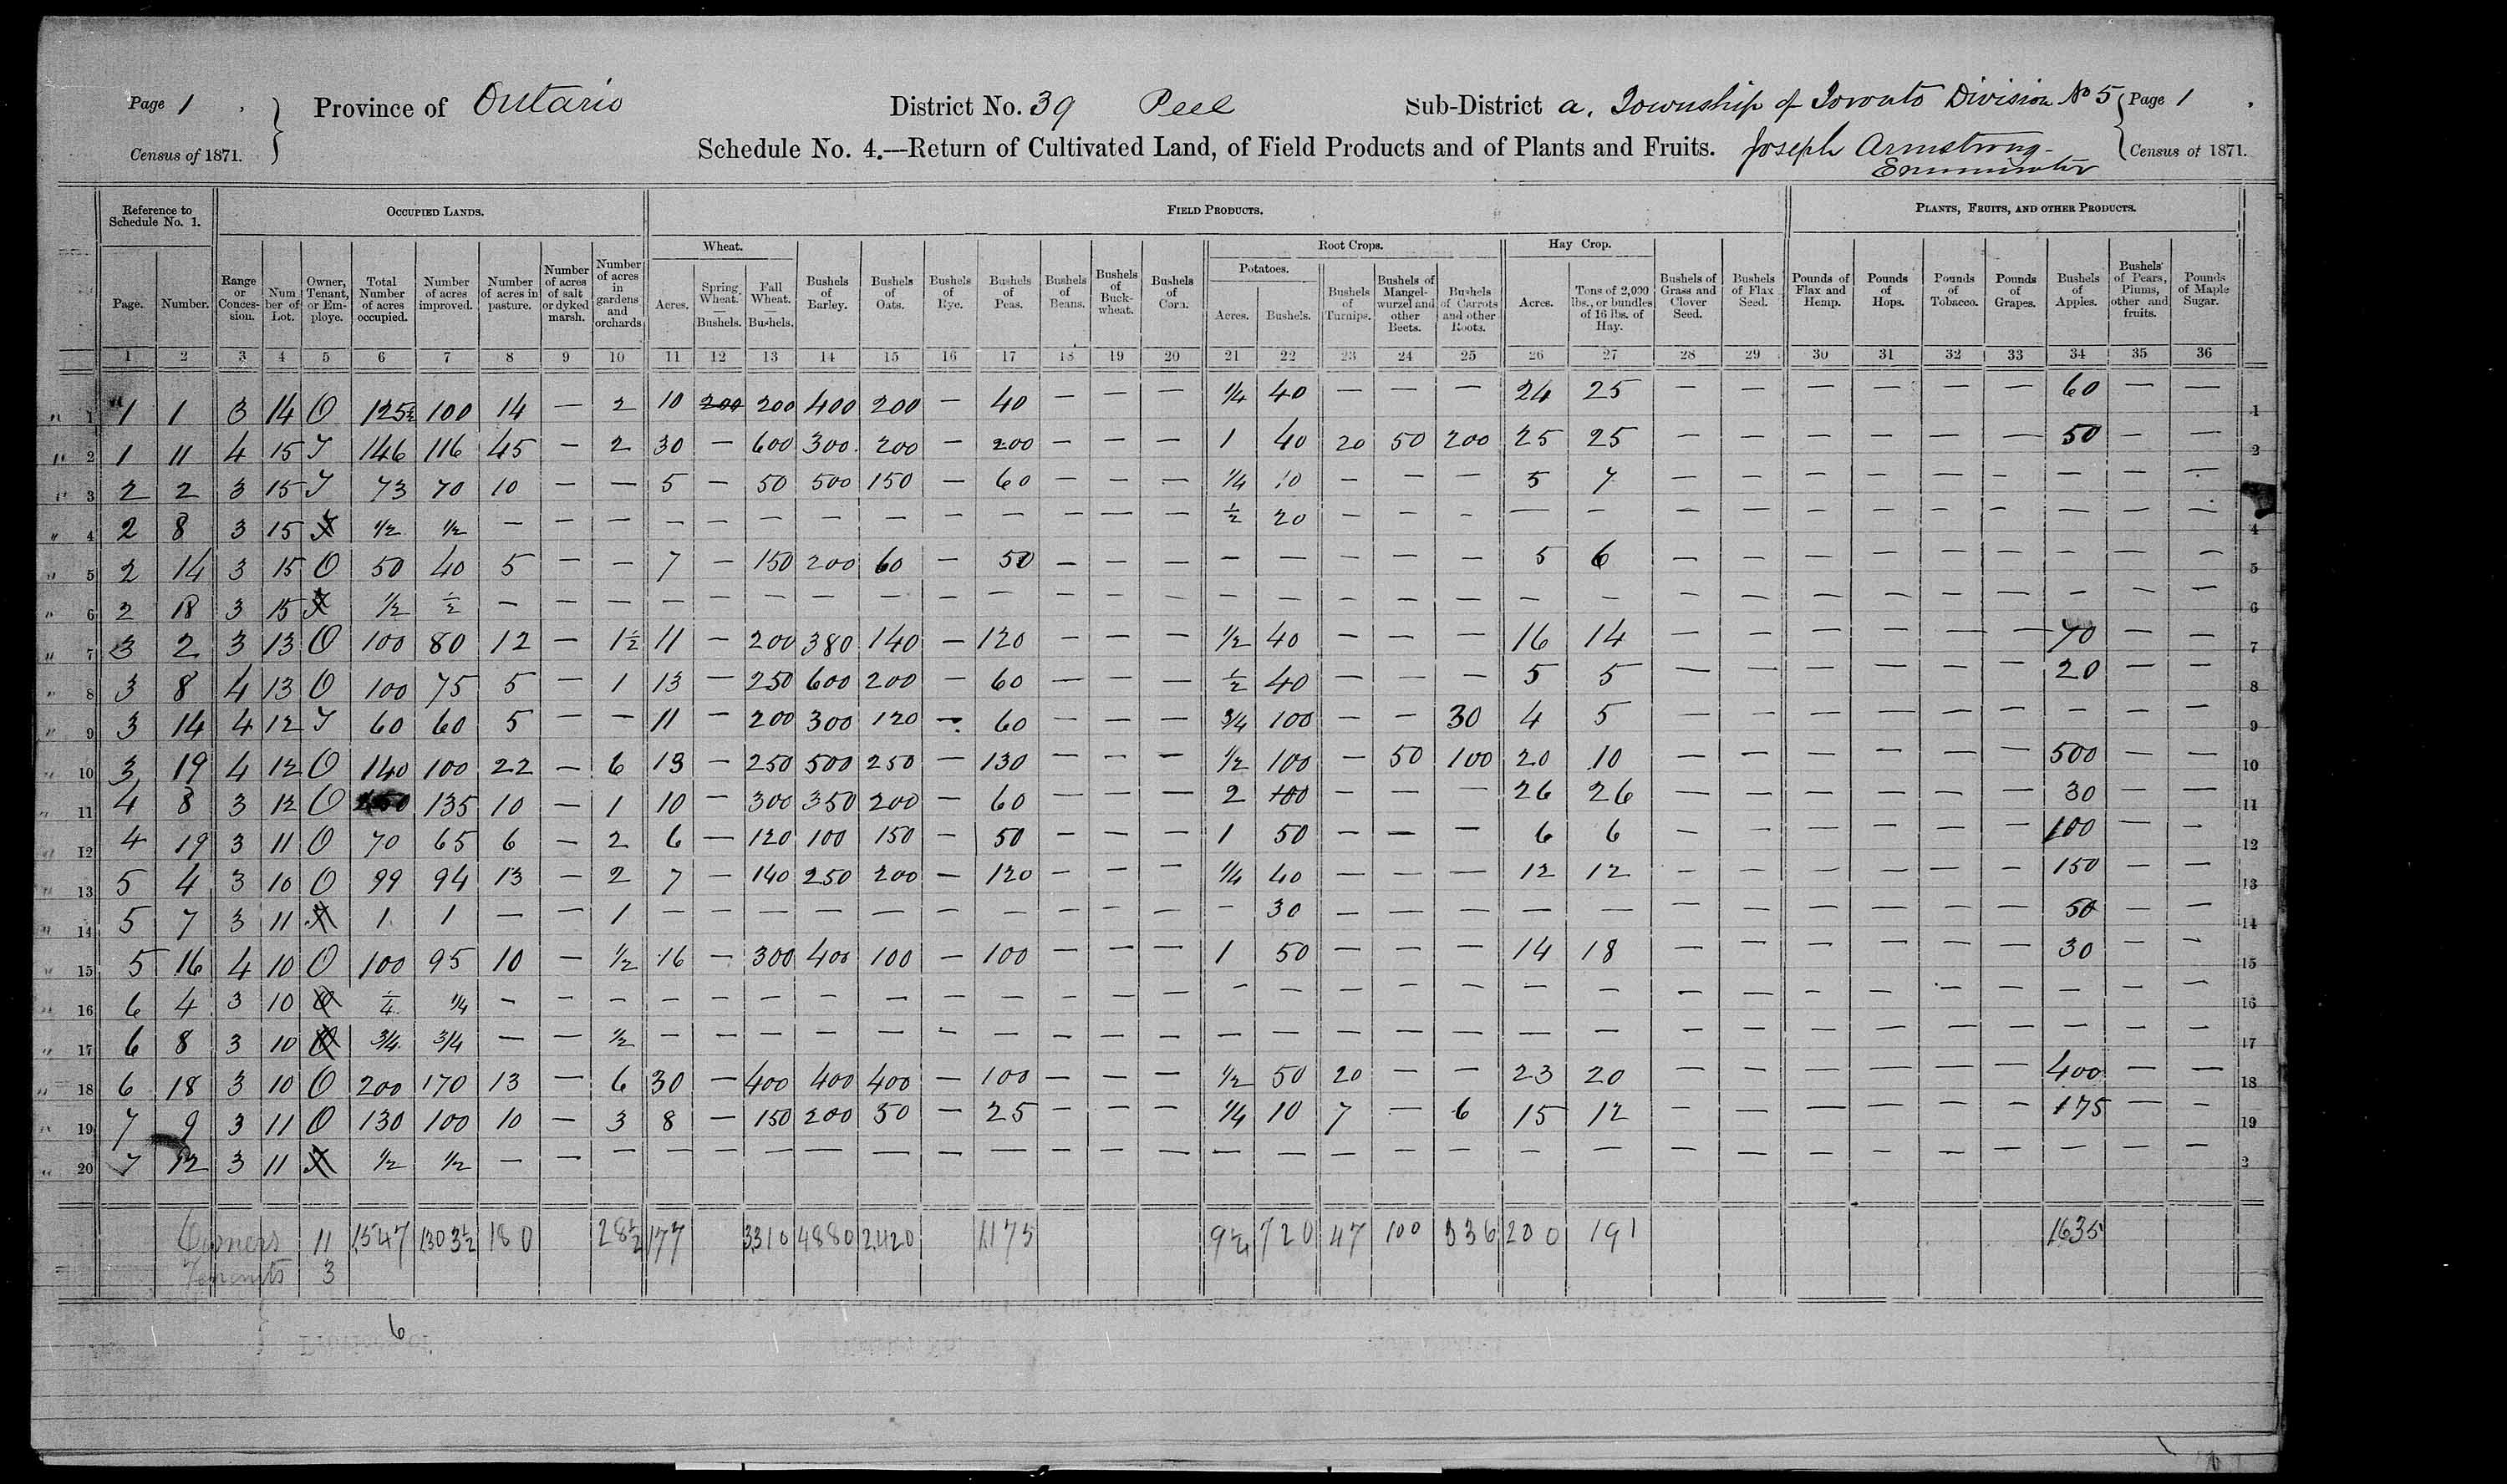 Title: Census of Canada, 1871 - Mikan Number: 142105 - Microform: c-9957